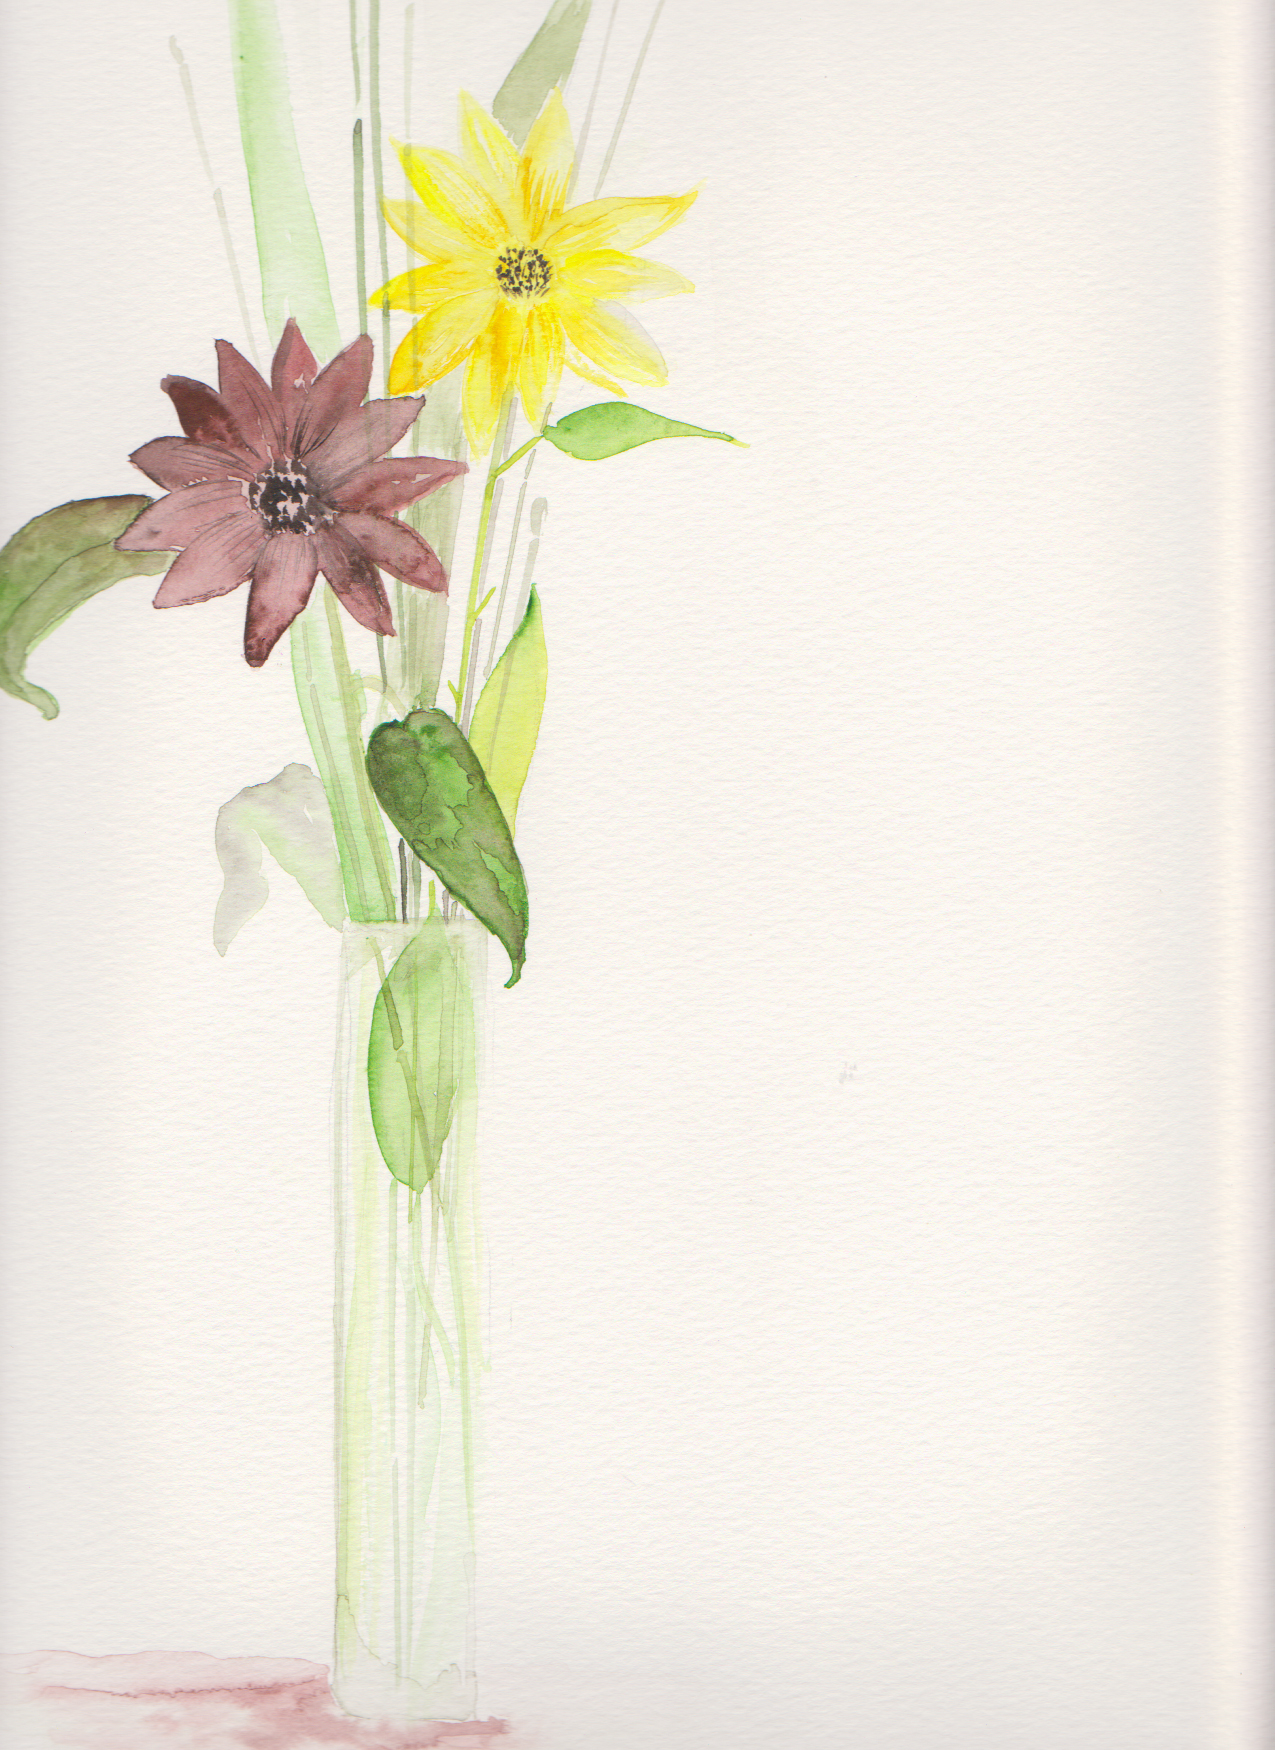 Sunflowers & Equisetum, watercolor,